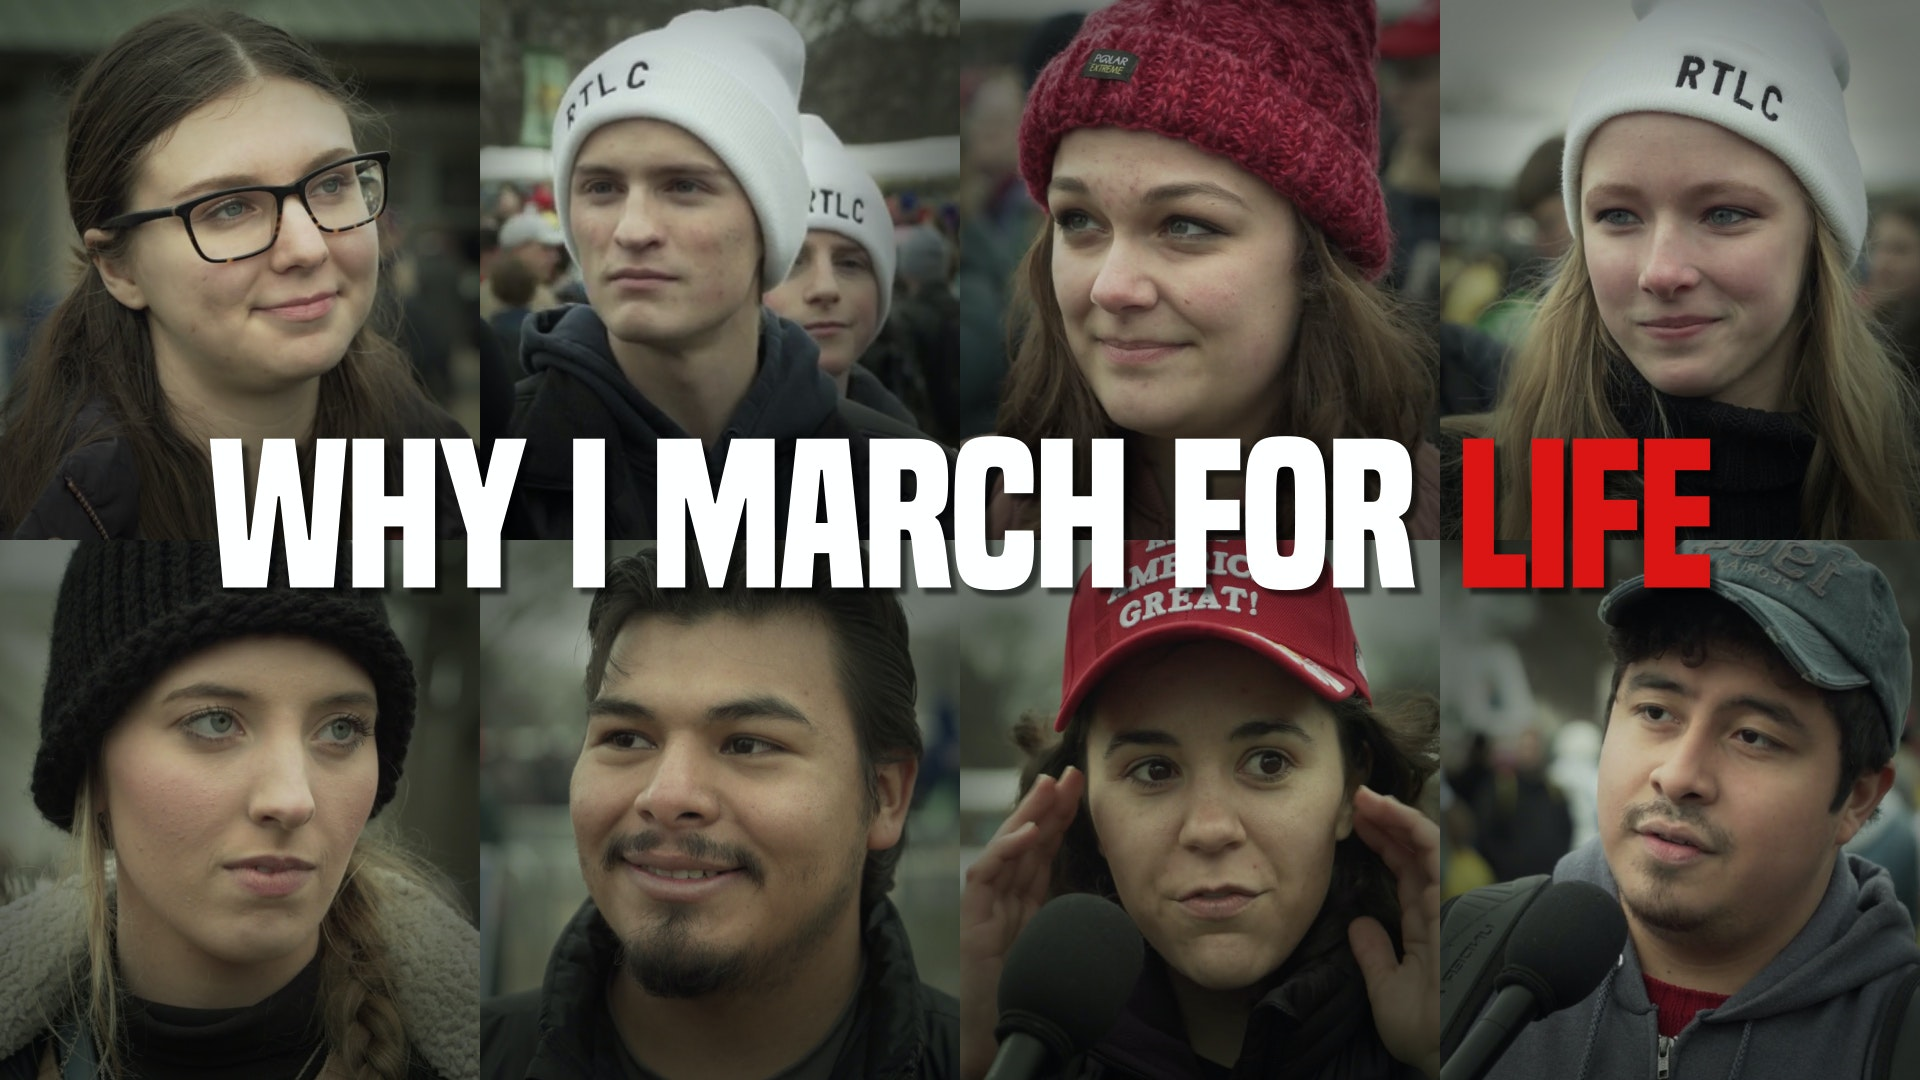 The INCREDIBLE true stories from March for Life 2020